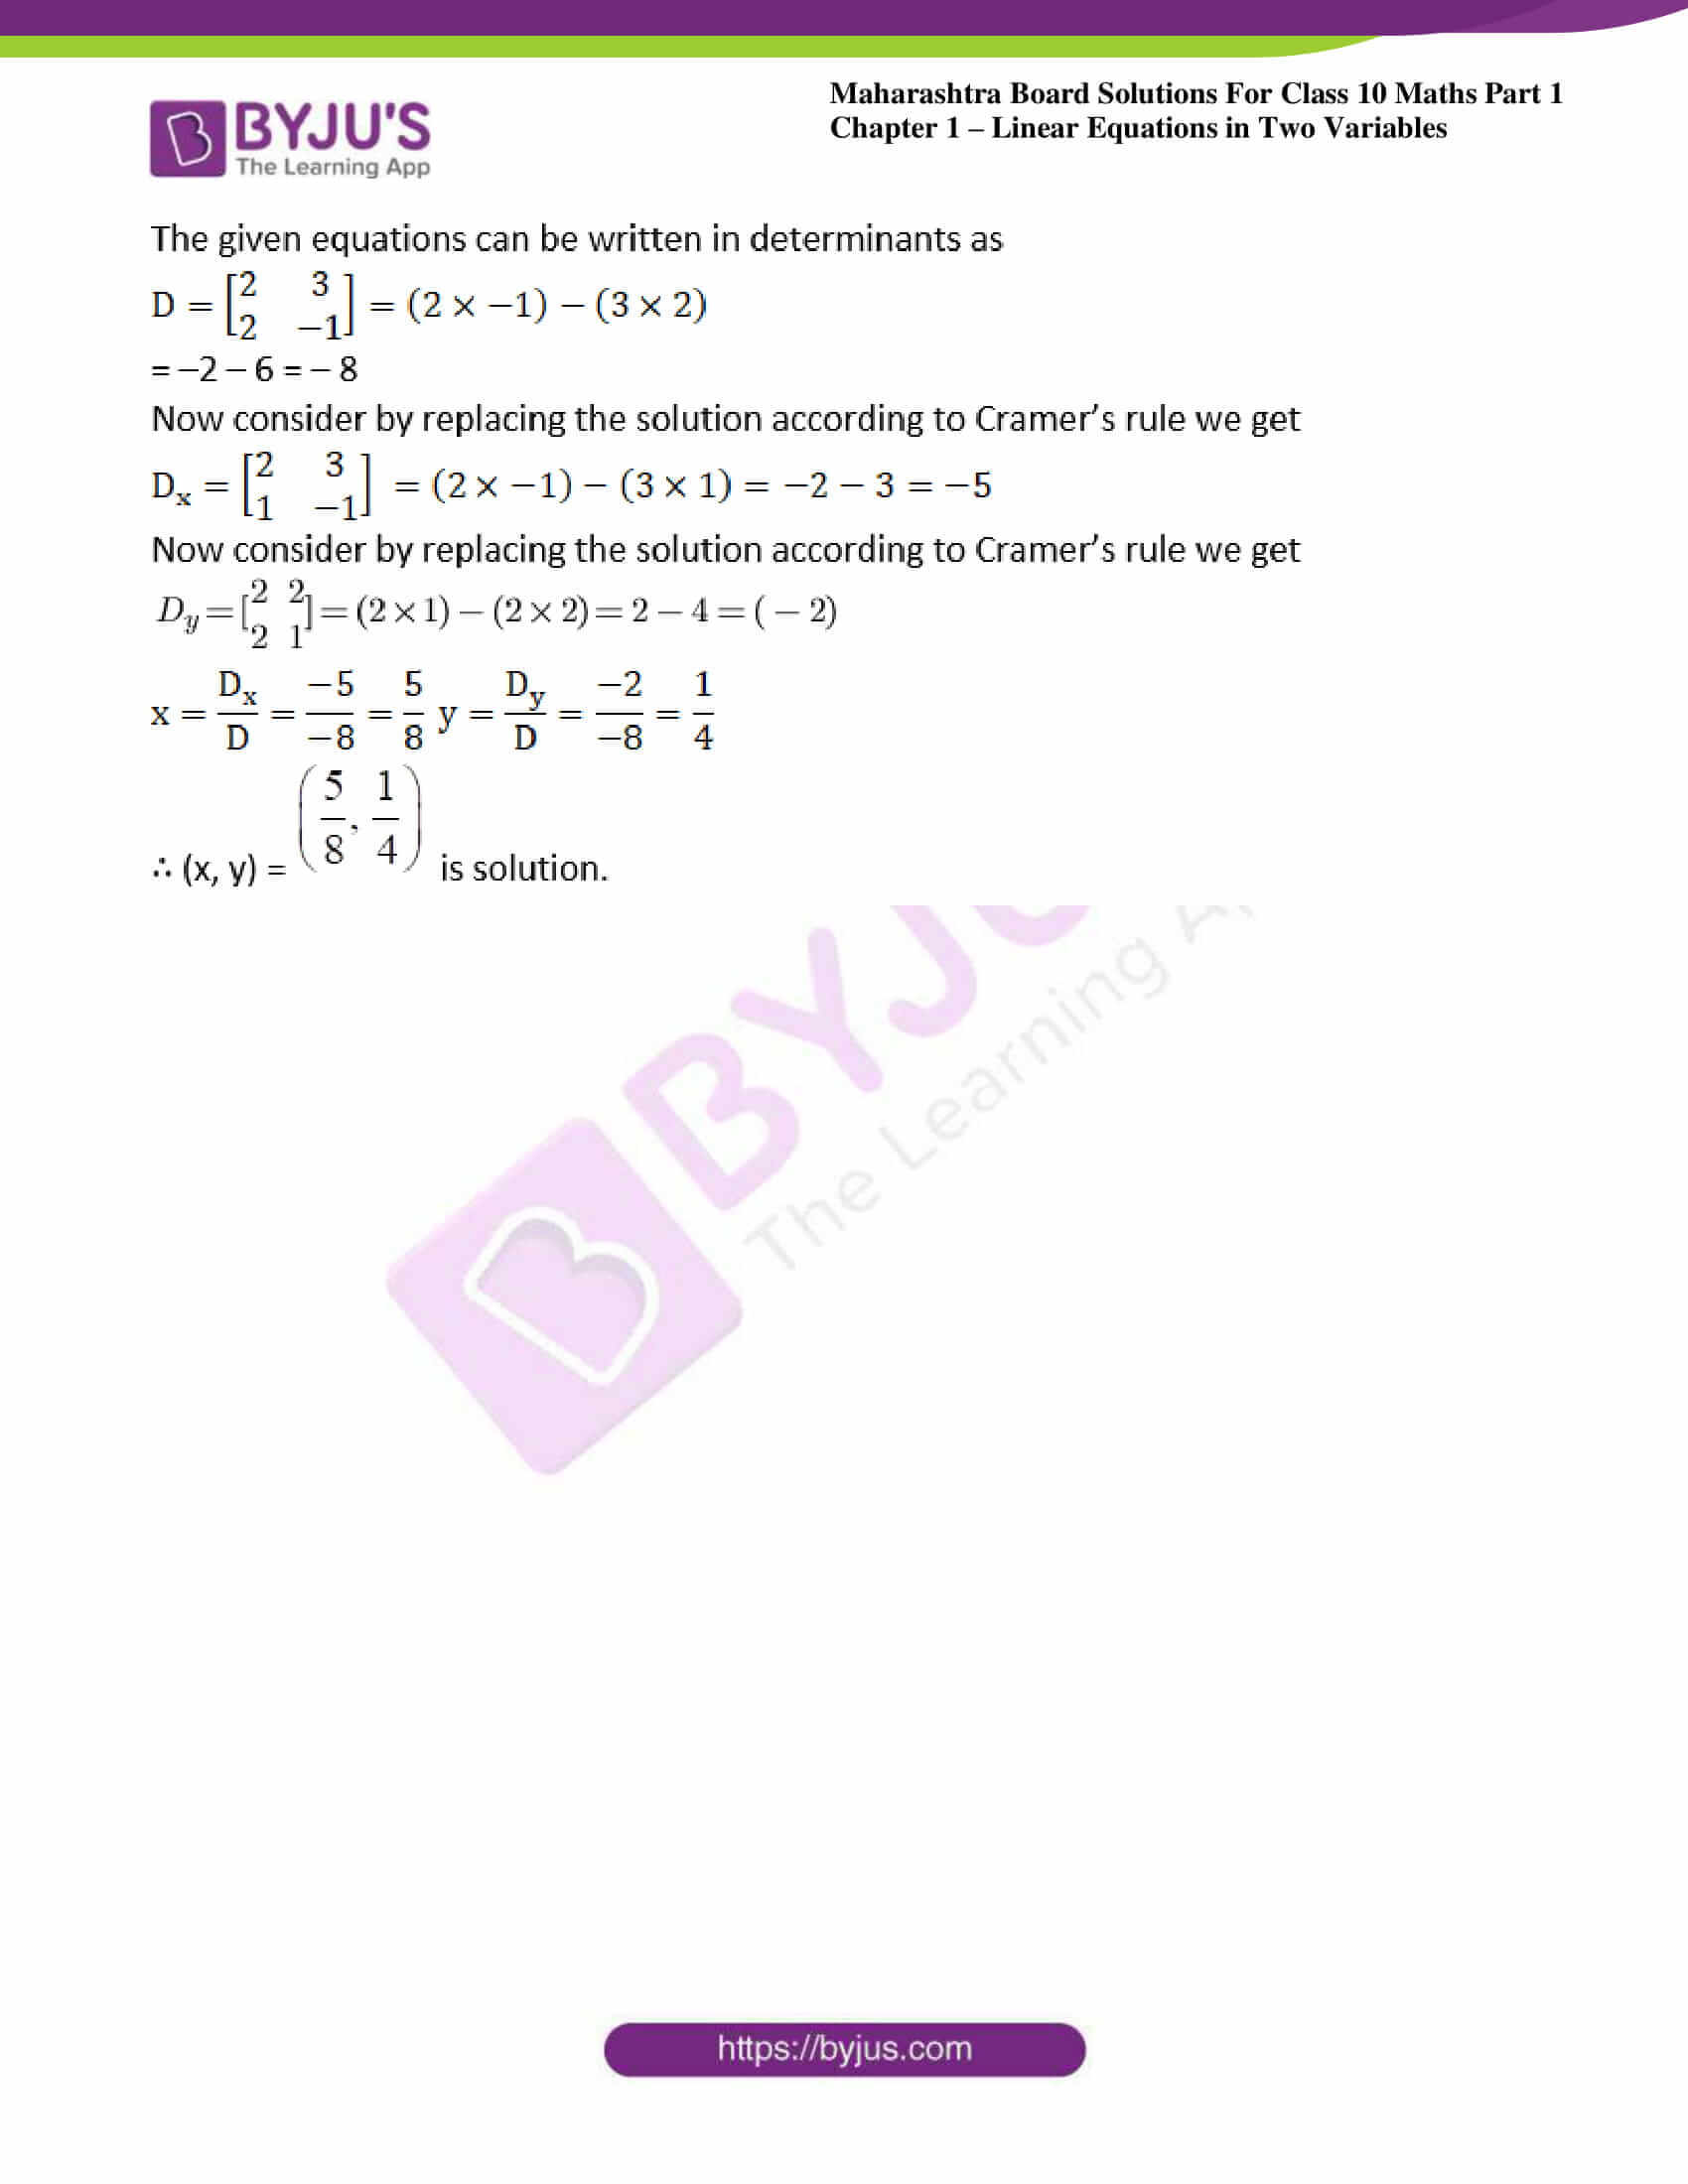 msbshse solutions class 10 maths part 1 chapter 1 22